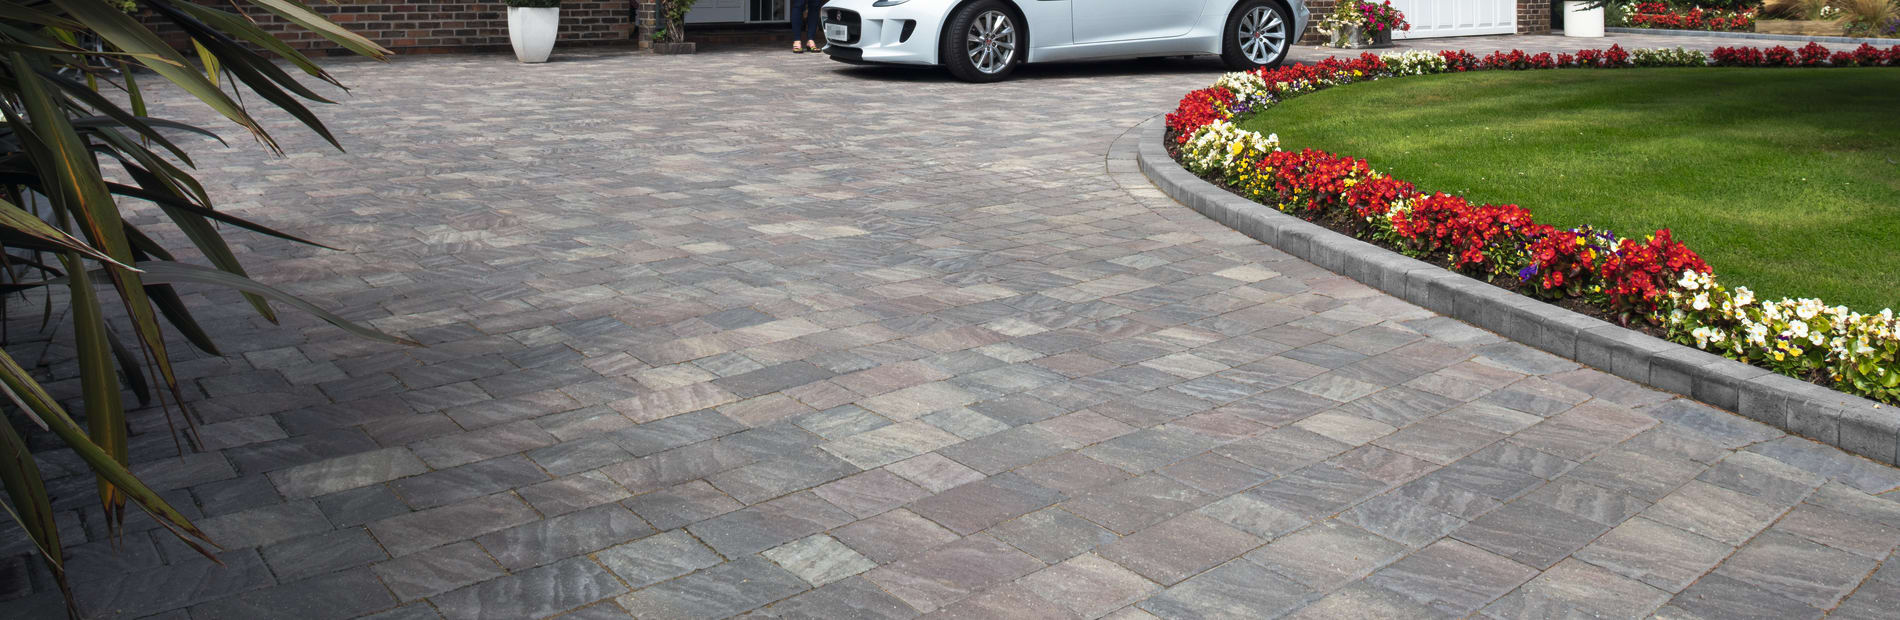 marshalls drivesett natrale driveway paving in slate colour.